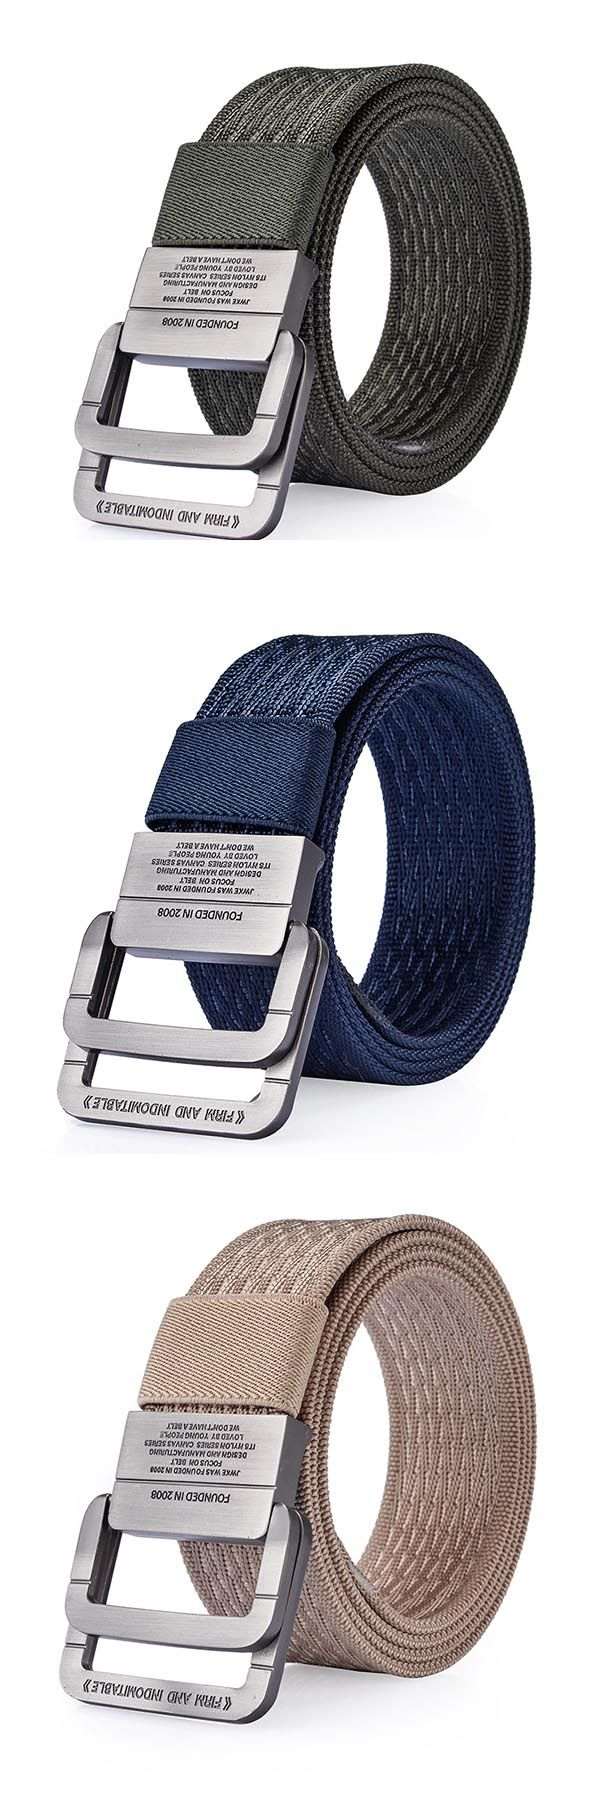 Flash deal: US$12.44 + Free shipping. Men's belt, men's buckle belt, nylon belt, double ring belt, alloy buckle belt, military durable belt, outdoor sport pants strip. Length:120cm/47.24'', double ring buckle.